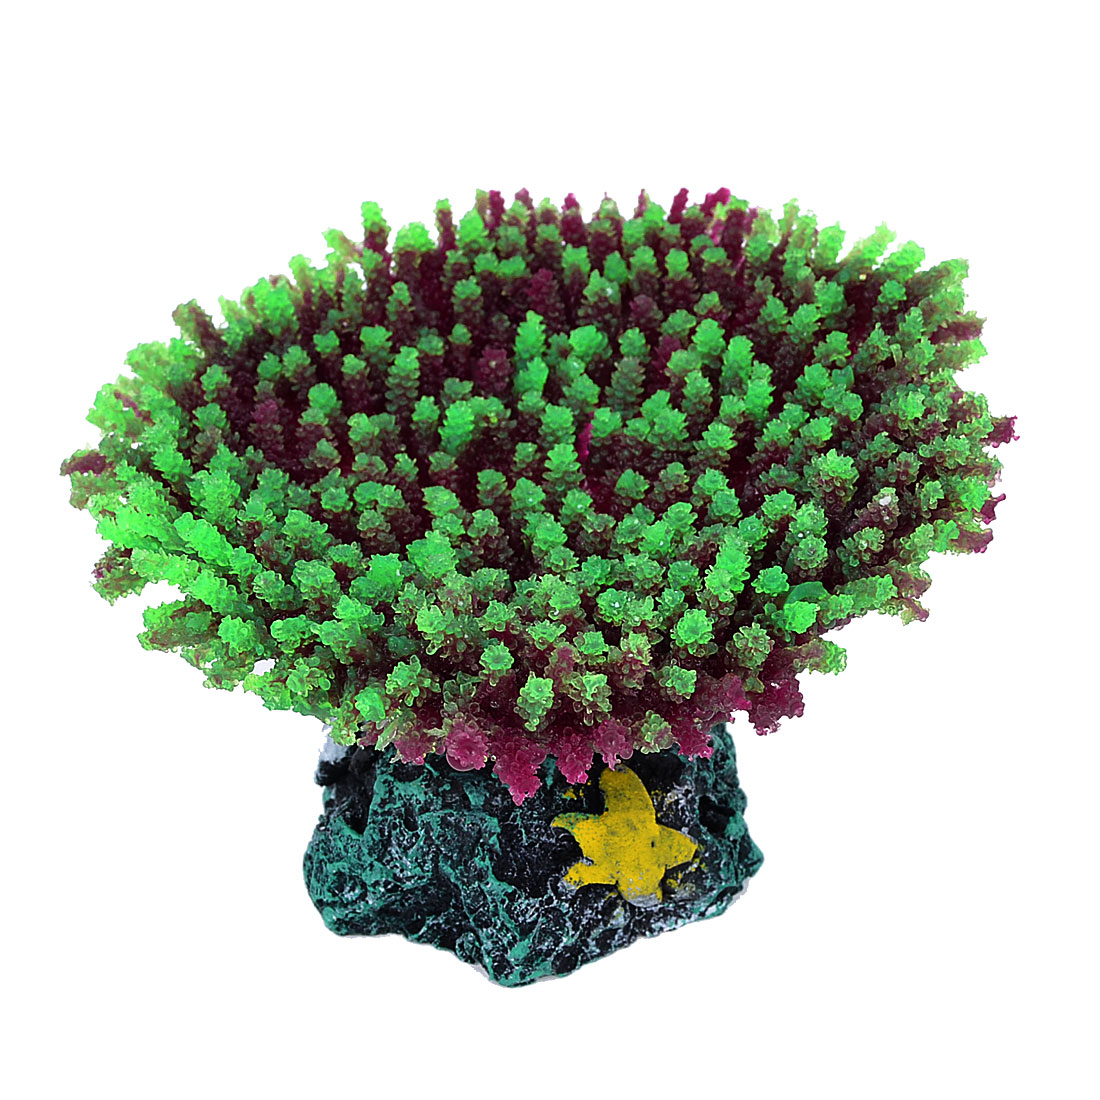 Aquarium Tank Silicone Artificial Sea Anemone Coral Ornament Green 2.2""